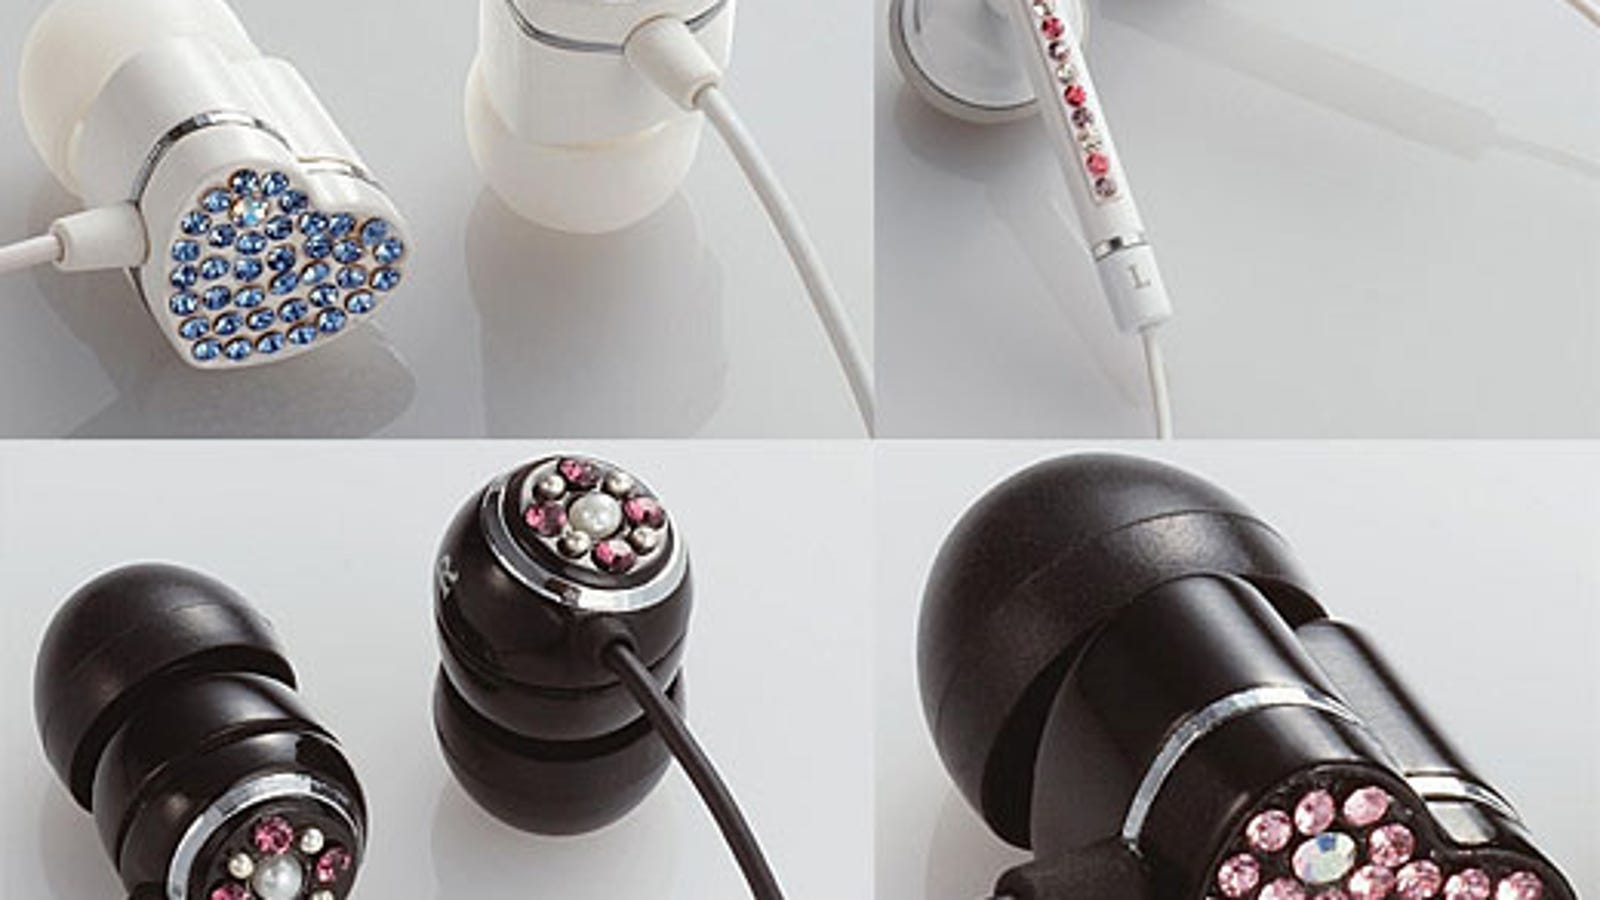 sleeping earbuds snoring - Elecom Ear Drops Earphones: Cheap Hookers Listen to Music, Too